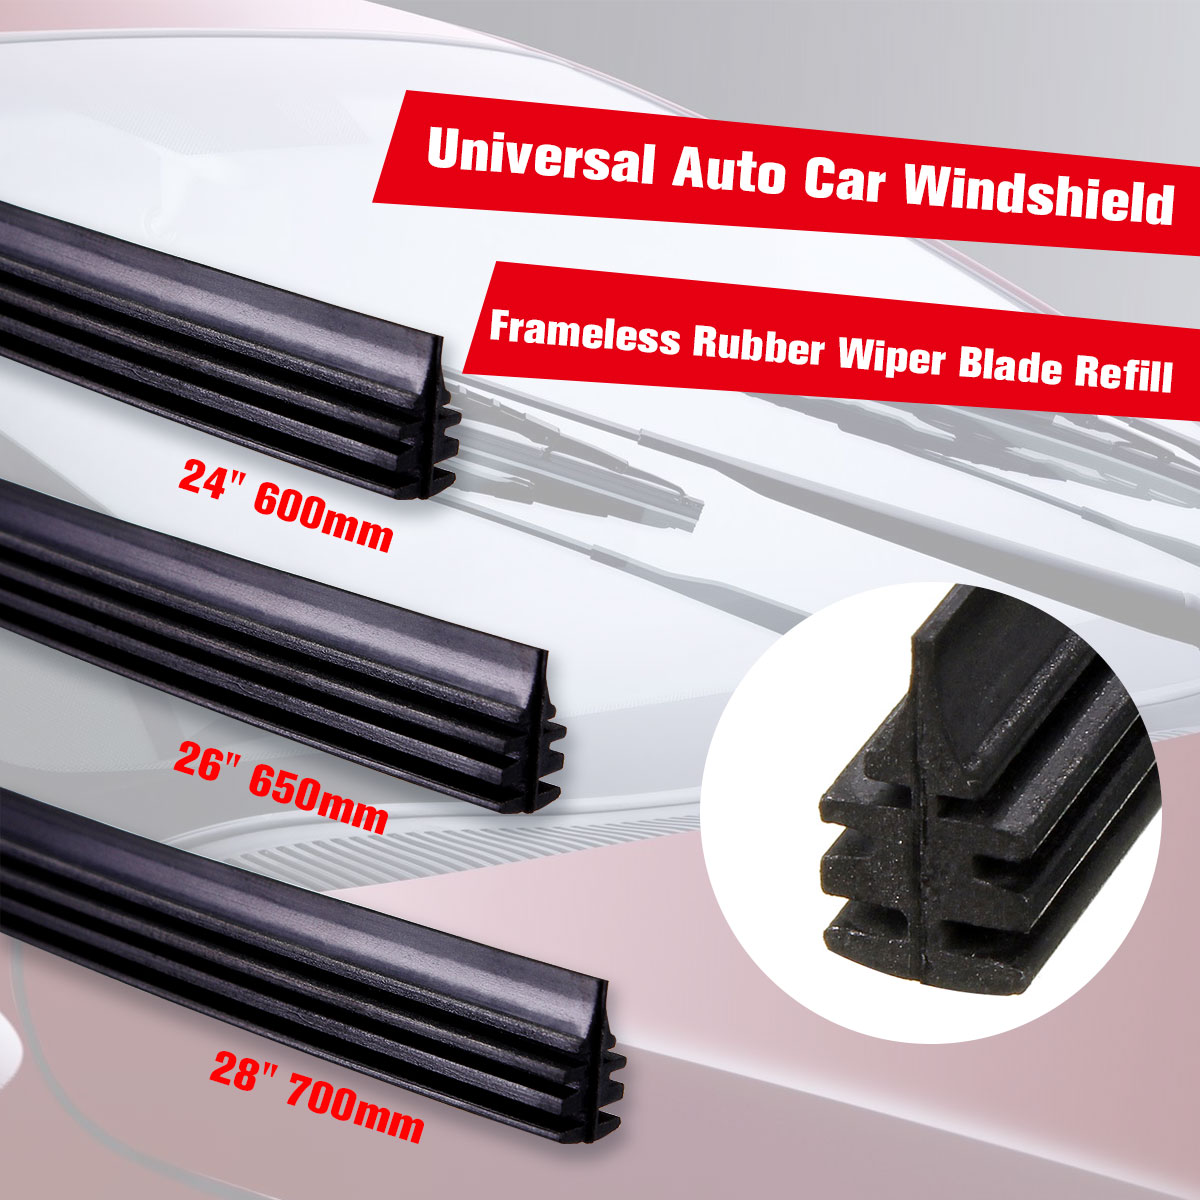 "2 PCS Universal 28"" 26'' 24''  700mm 650mm 600mm  Car Rubber Frameless Windshield Wash Wiper Blade Cut To Size  Car Accessories(China)"